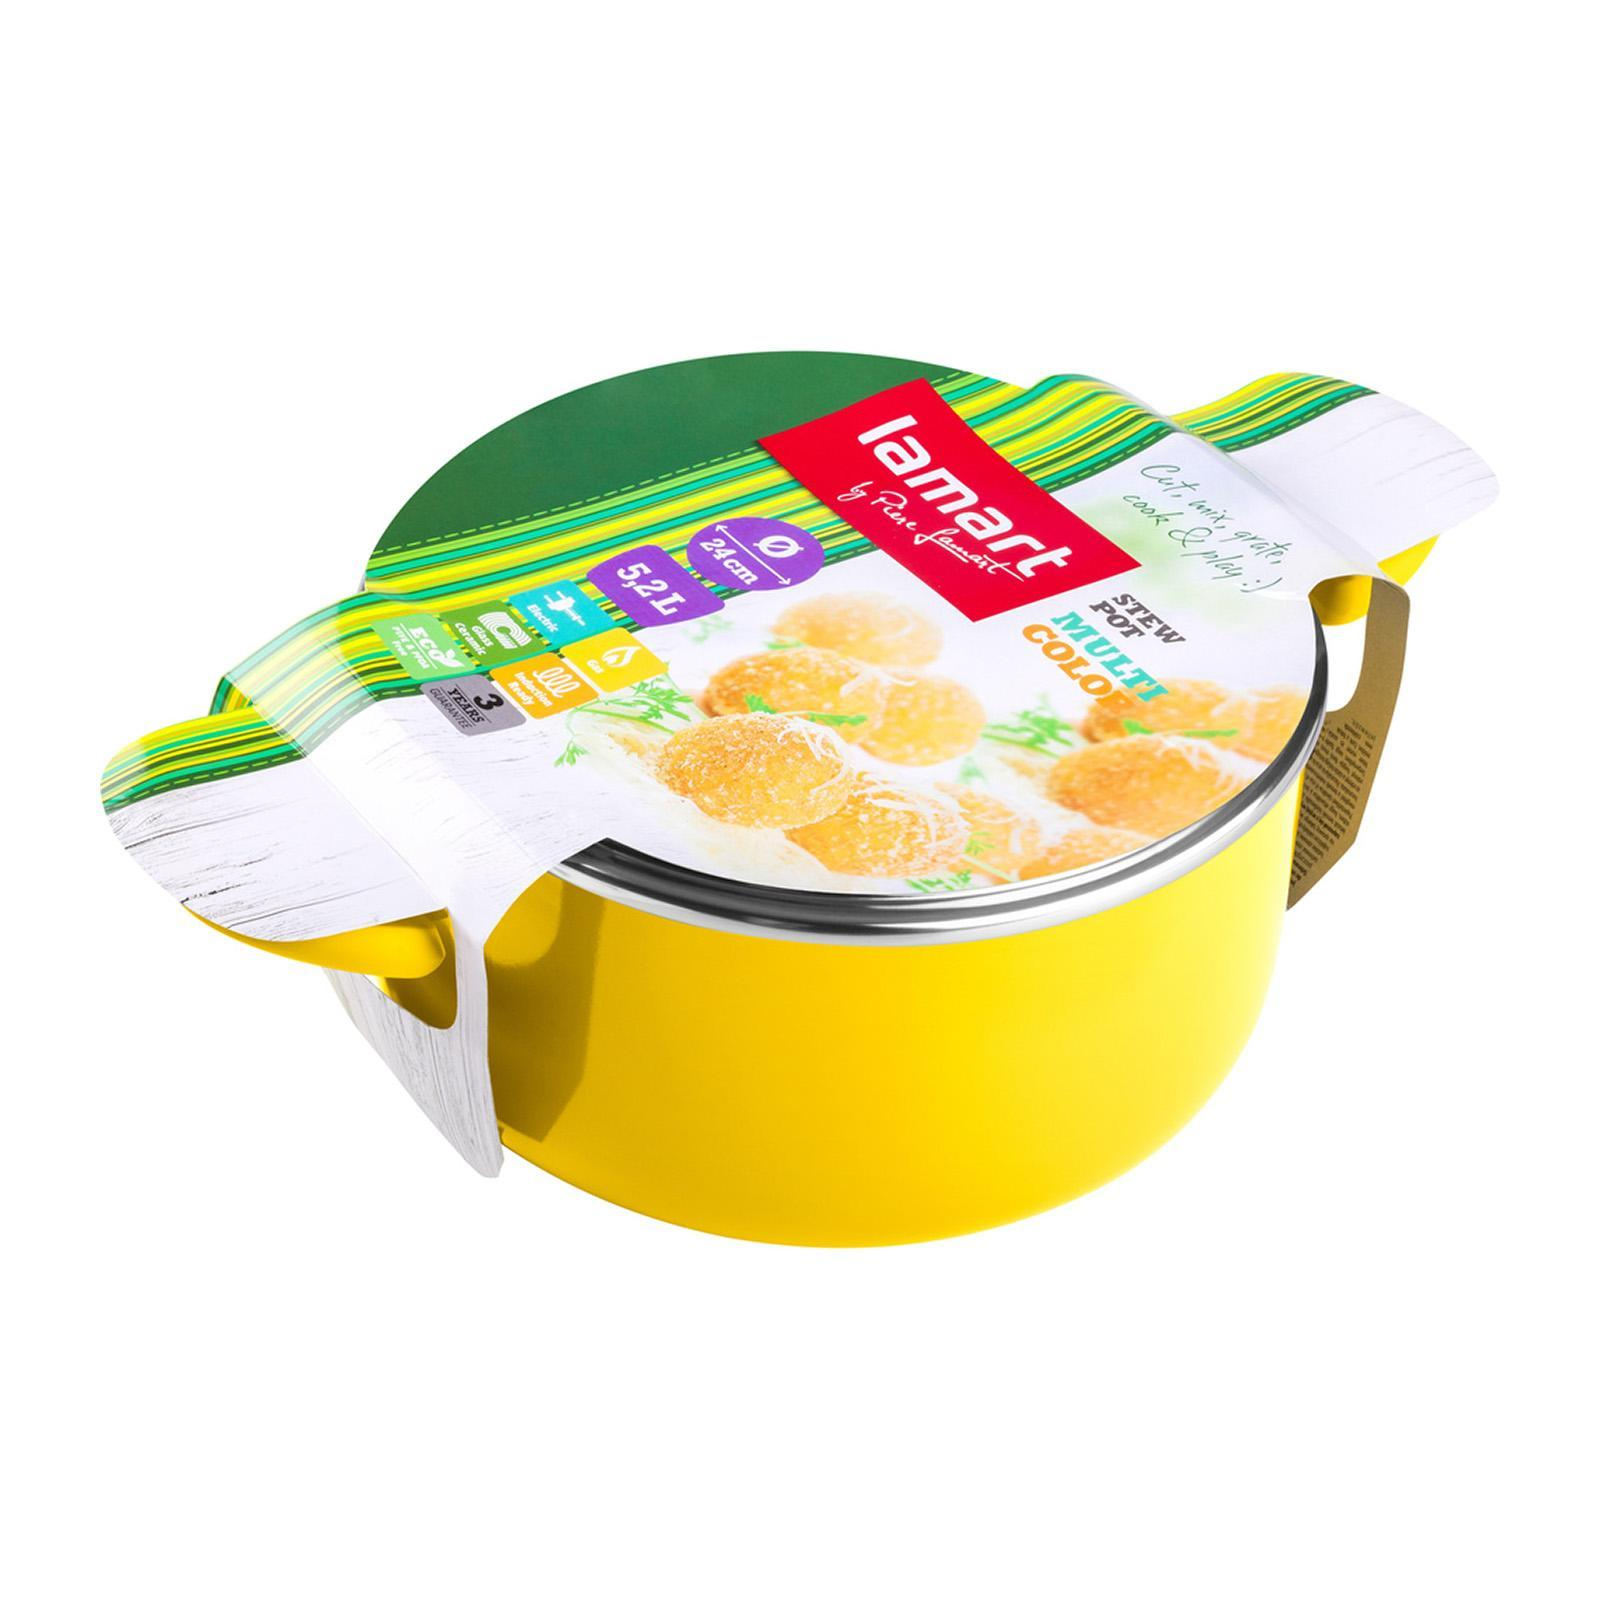 Lamart Aluminium Saucepan With Lid - 24cm - Yellow - 4.6L